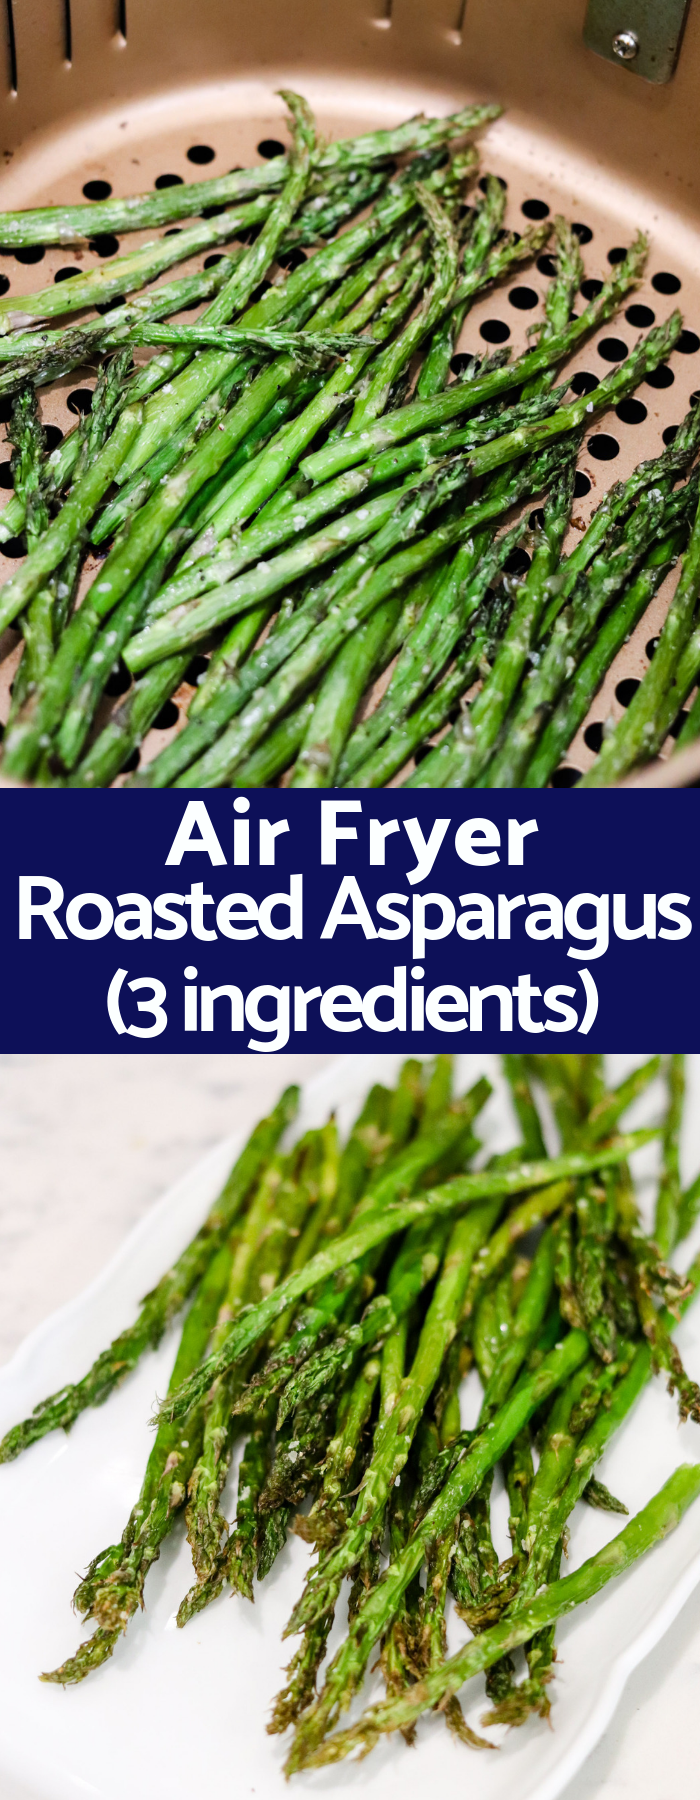 With only 2 ingredients and taking a fraction of the typical time, this Air Fryer Roasted Asparagus will be your favorite way to cook asparagus from now on! KETO, PALEO, Whole30, vegetarian, vegan, and pretty much every diet compliant!